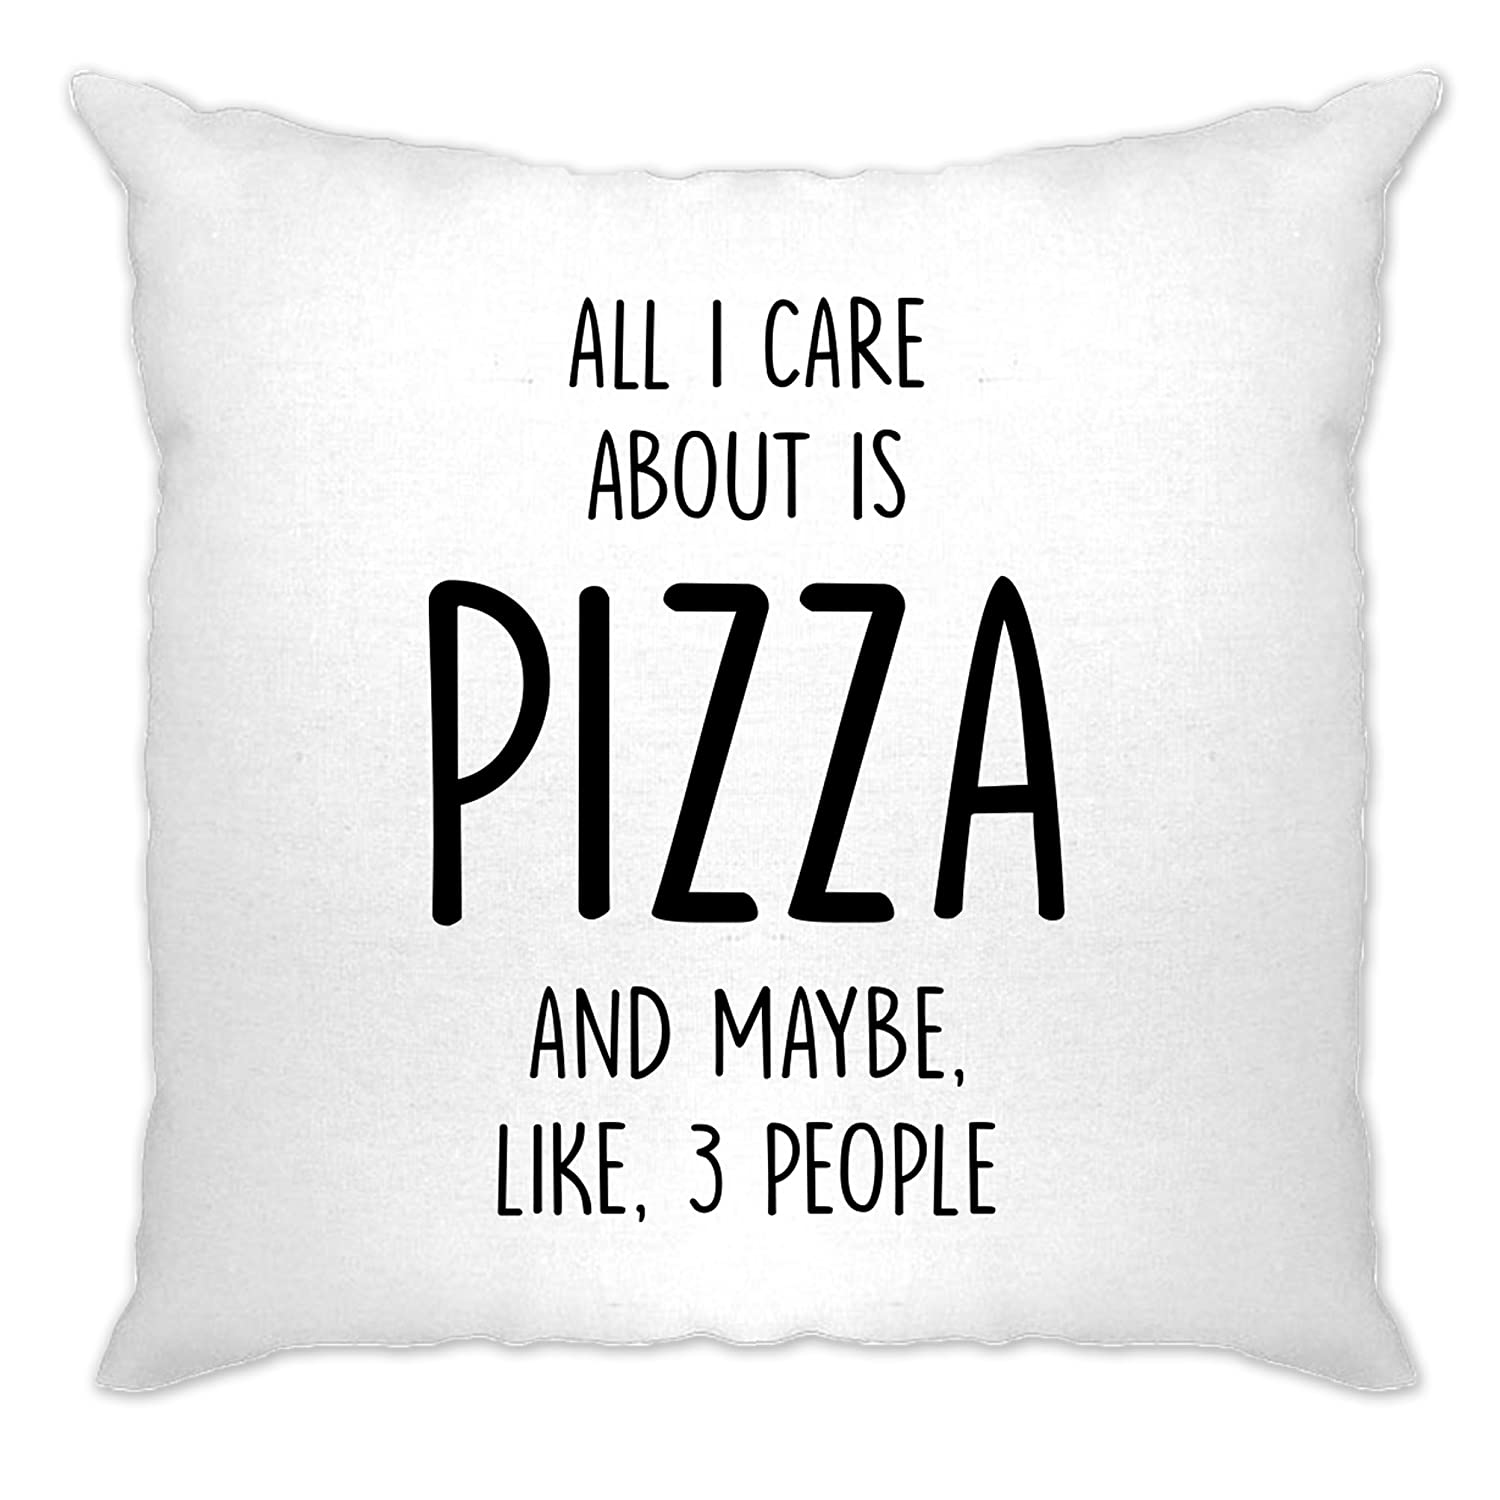 Funny Cushion Cover Sofa Home All I Care About Is Pizza And Like 3 People Slogan Food Eat Hungry Cheese Pepperoni Toppings Cool Funny Gift Present A-CC-02057-NAT